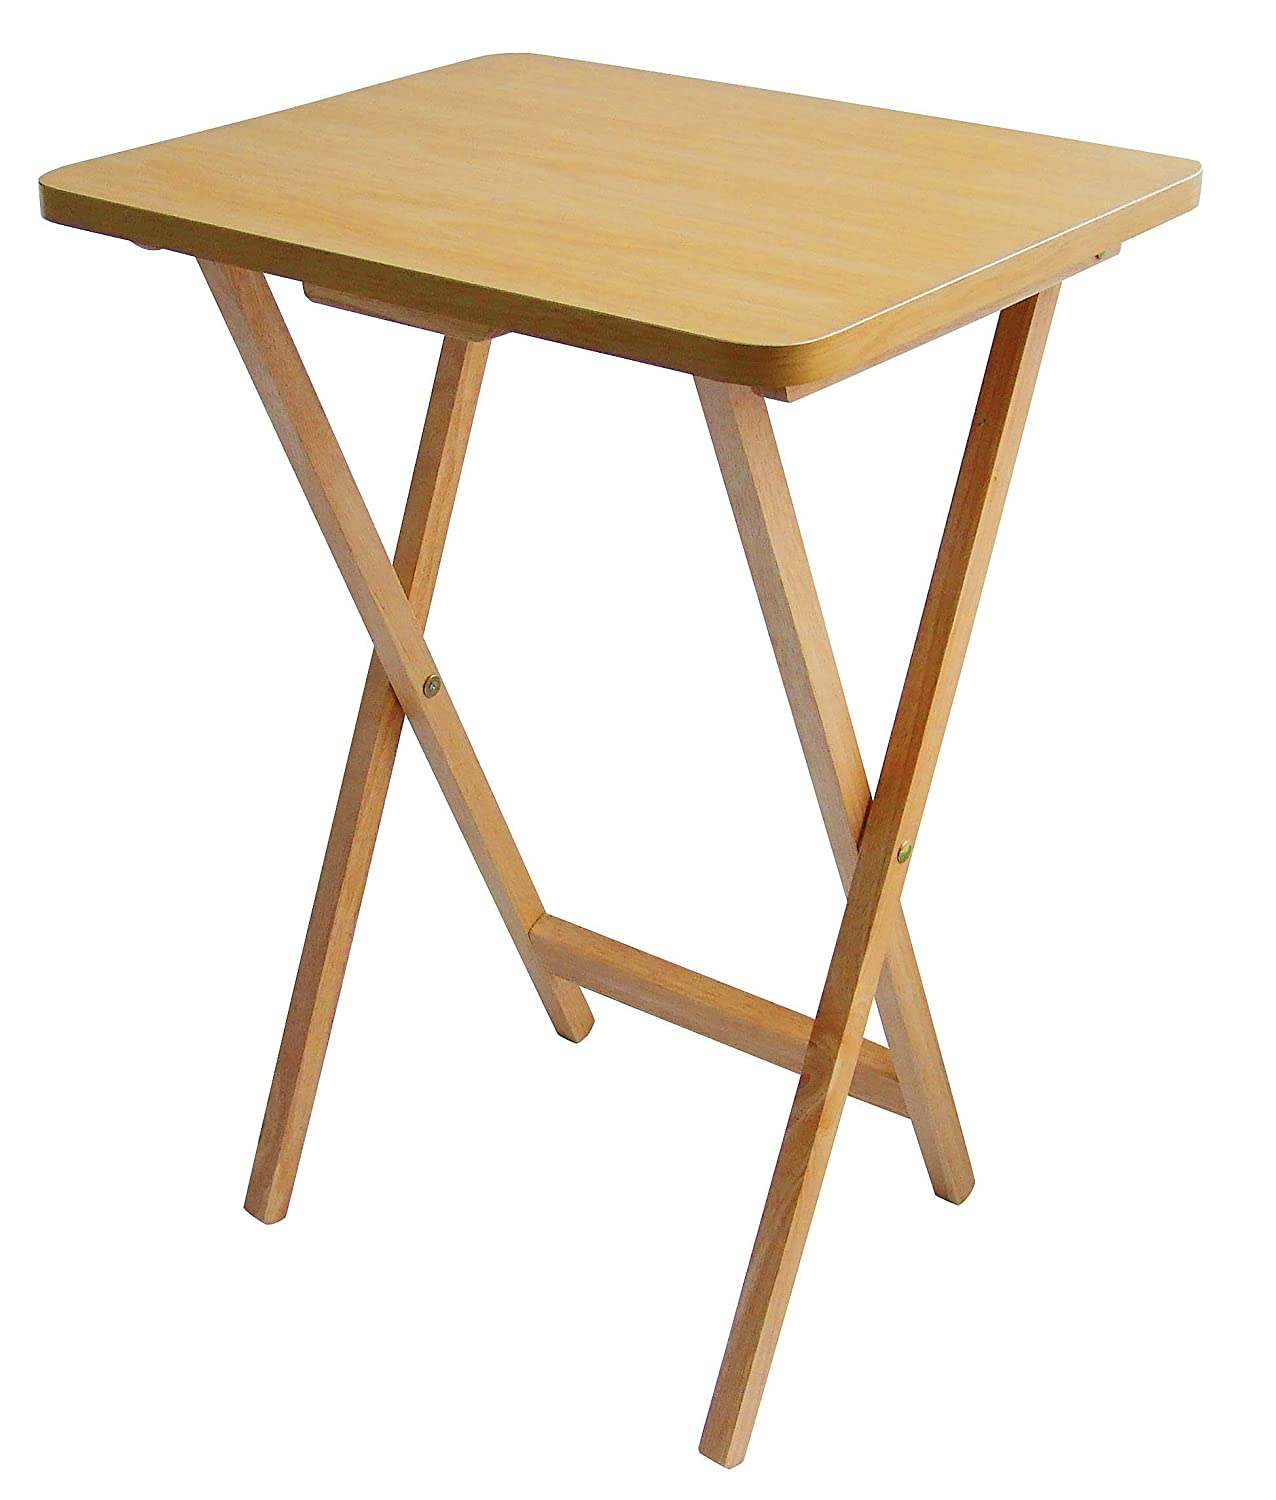 Folding wooden snack table desk small dining foldable portable stand furniture ebay - Small folding dining table ...